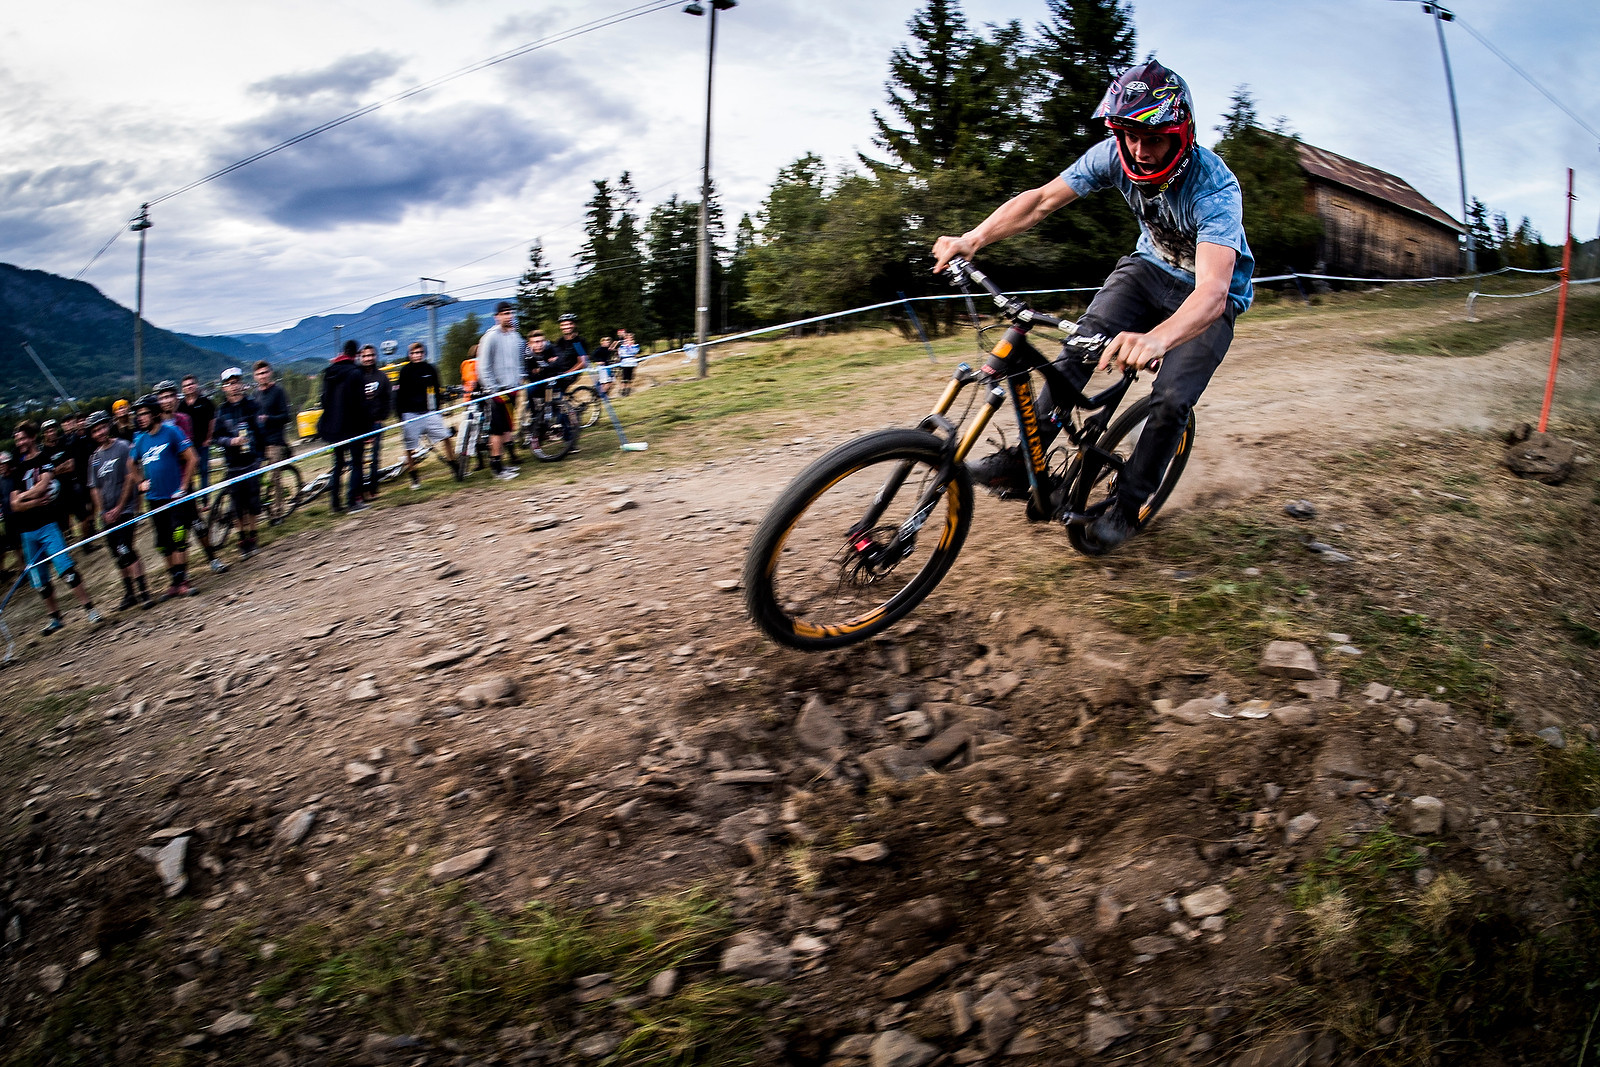 Joe Bowman of Steel City Media at the Industry World Champs - Has-Beens vs. Wannabes! Industry World Champs Race at Hafjell - Mountain Biking Pictures - Vital MTB